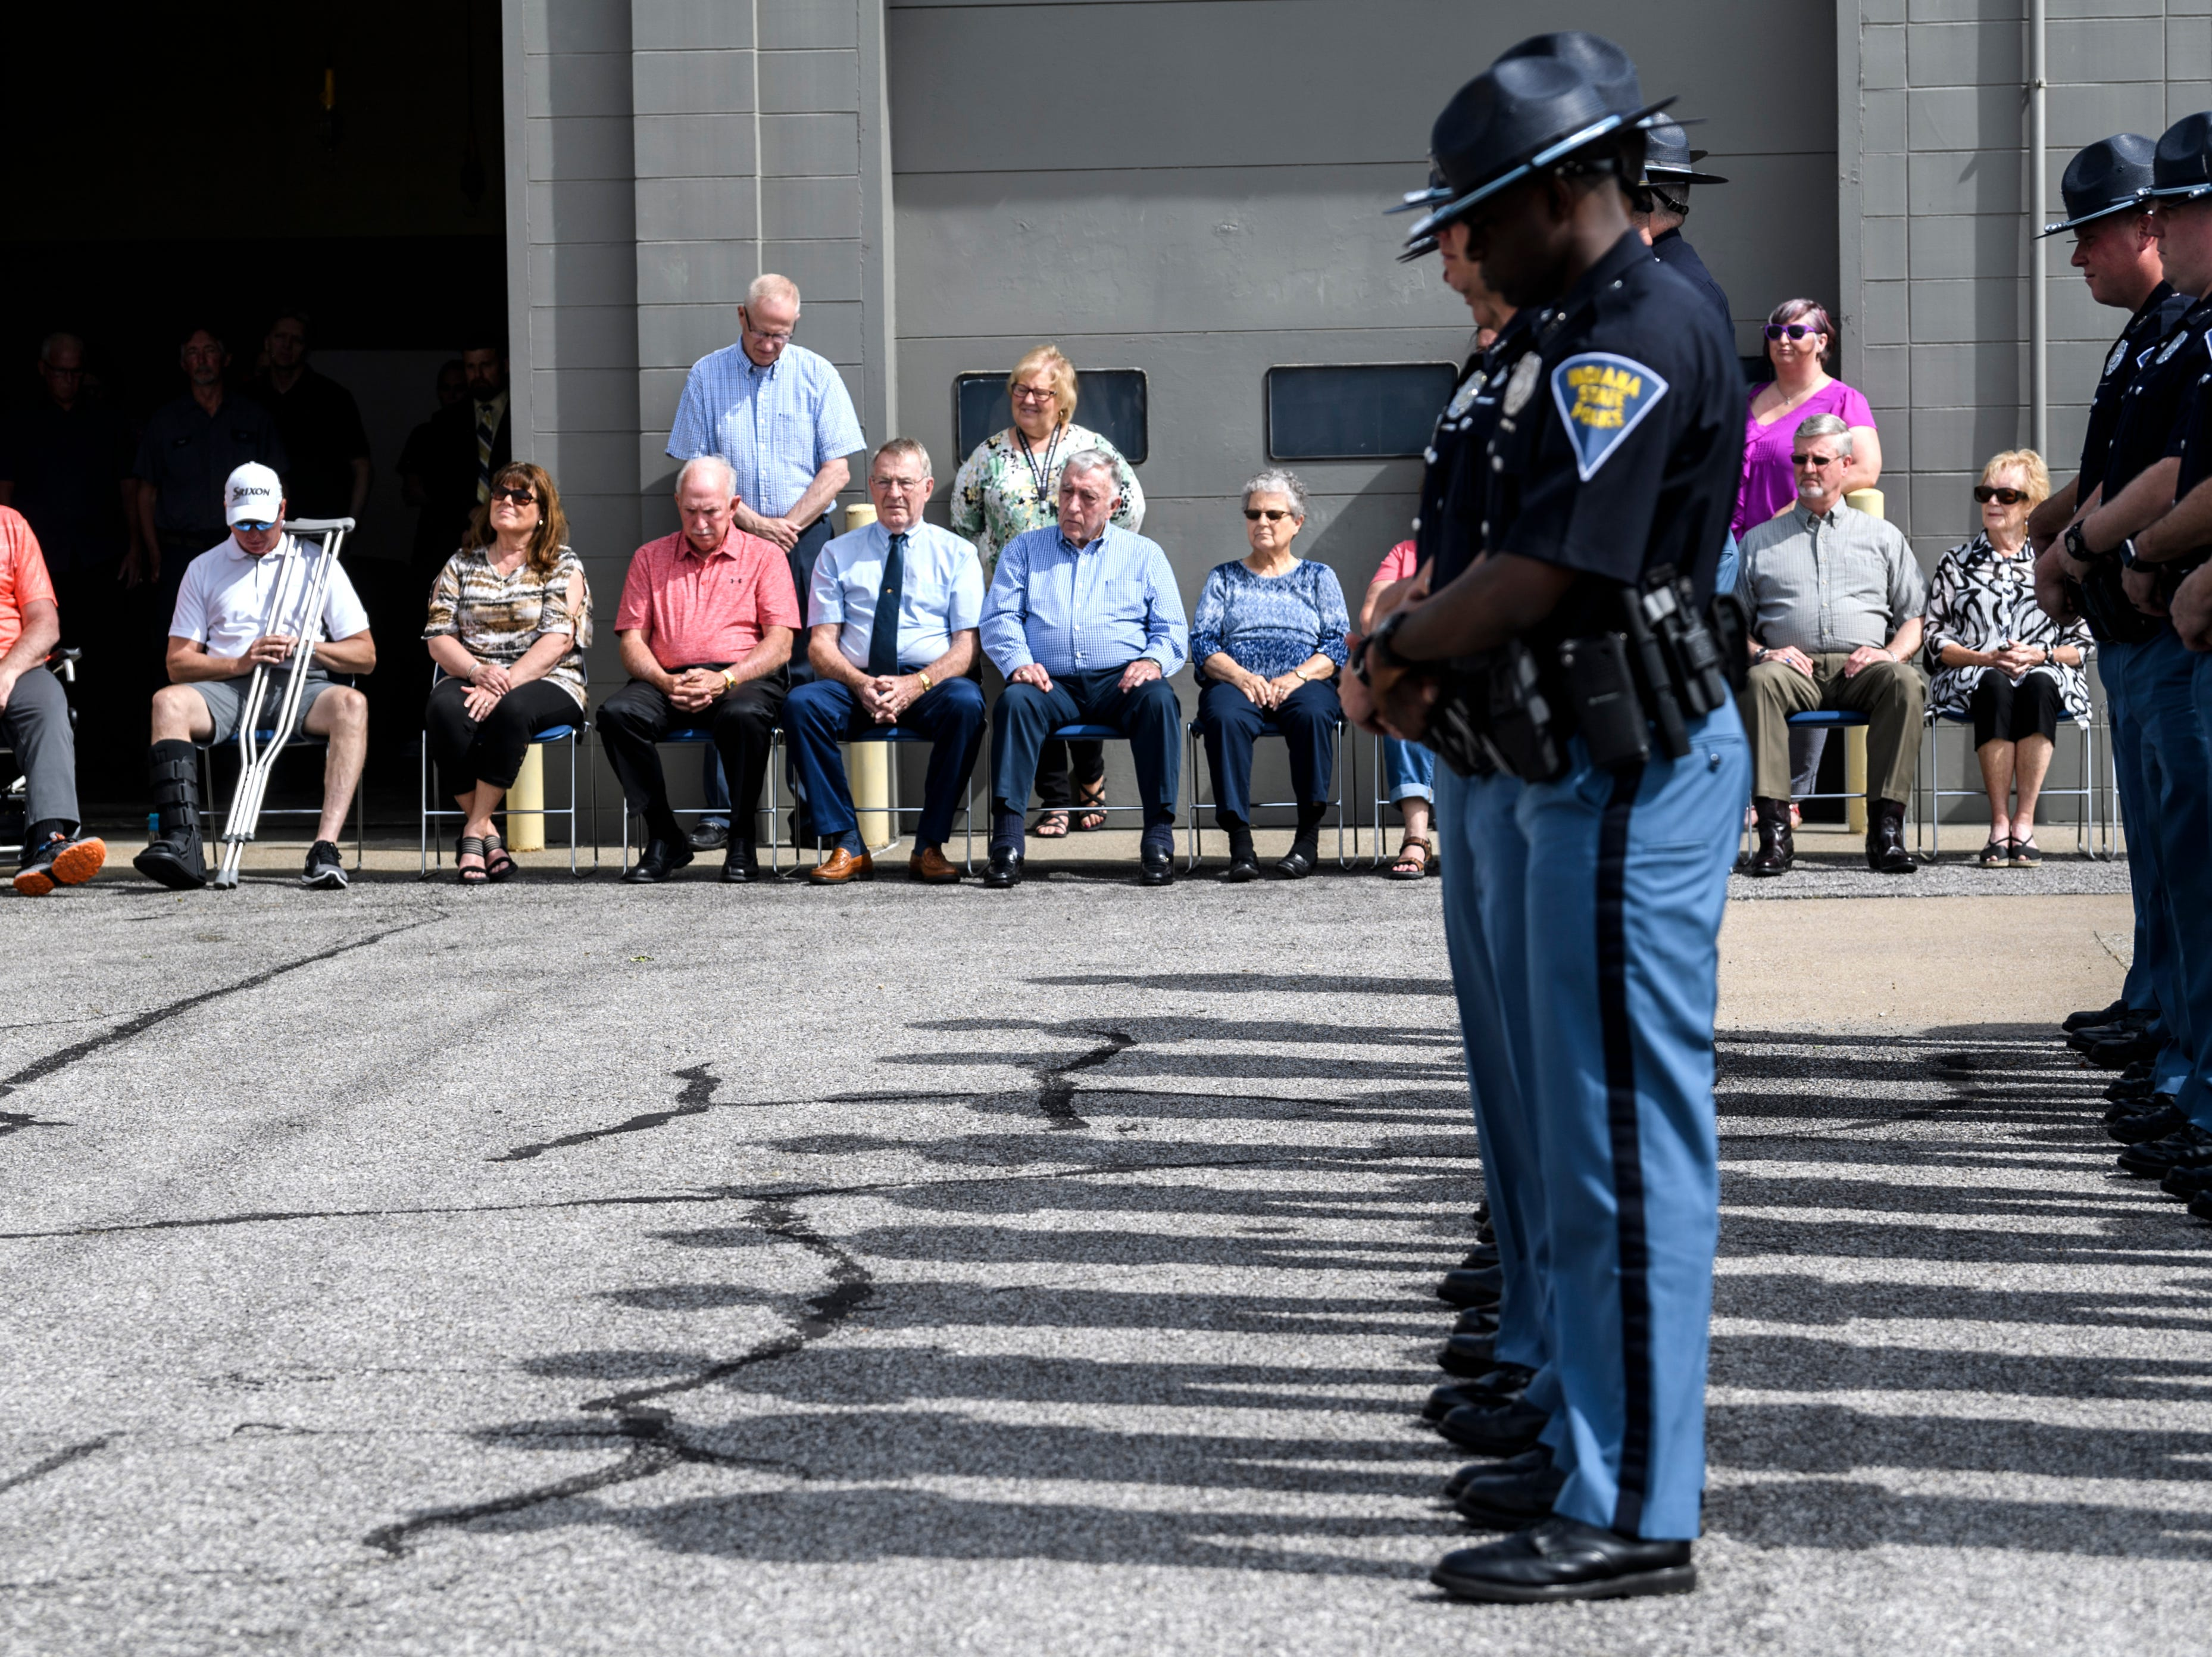 Community members and Indiana State Police Troopers listen to names of 46 ISP officers who have died in the line of duty since 1933 during an annual memorial service at the Indiana State Police Post in Evansville, Ind., Wednesday, May 8, 2019.